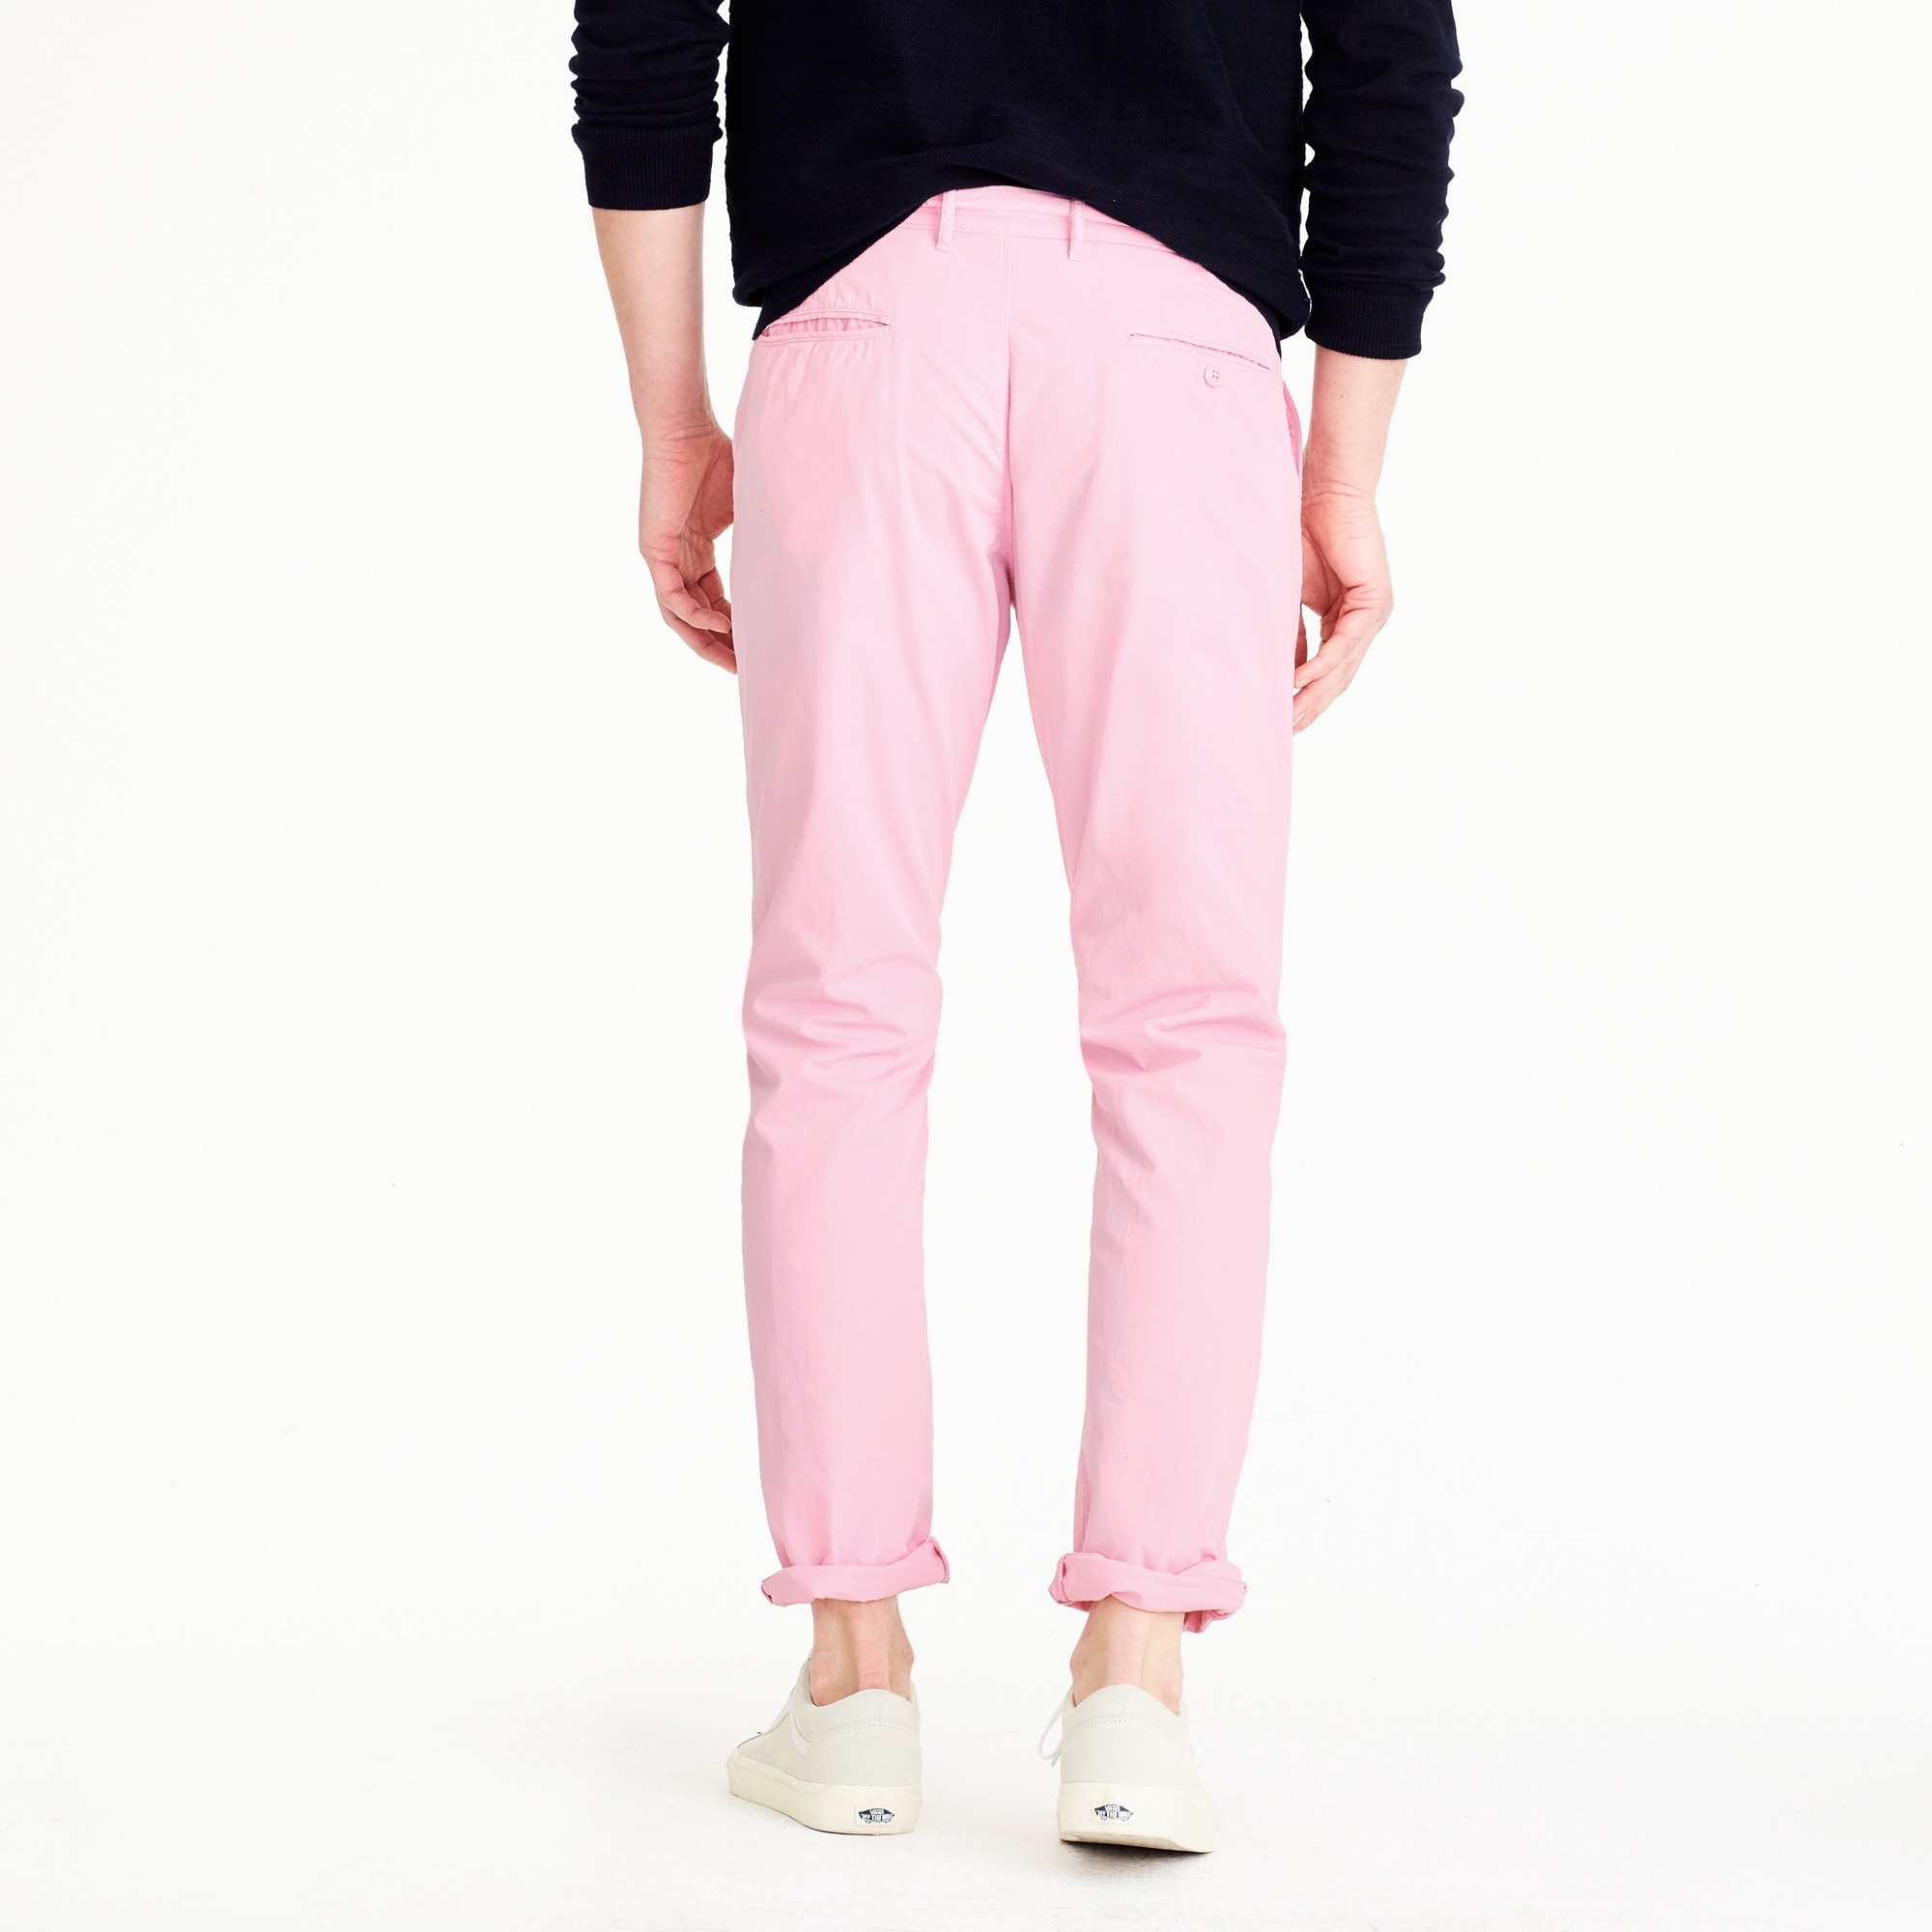 770 Straight-fit pant in lightweight garment-dyed chino